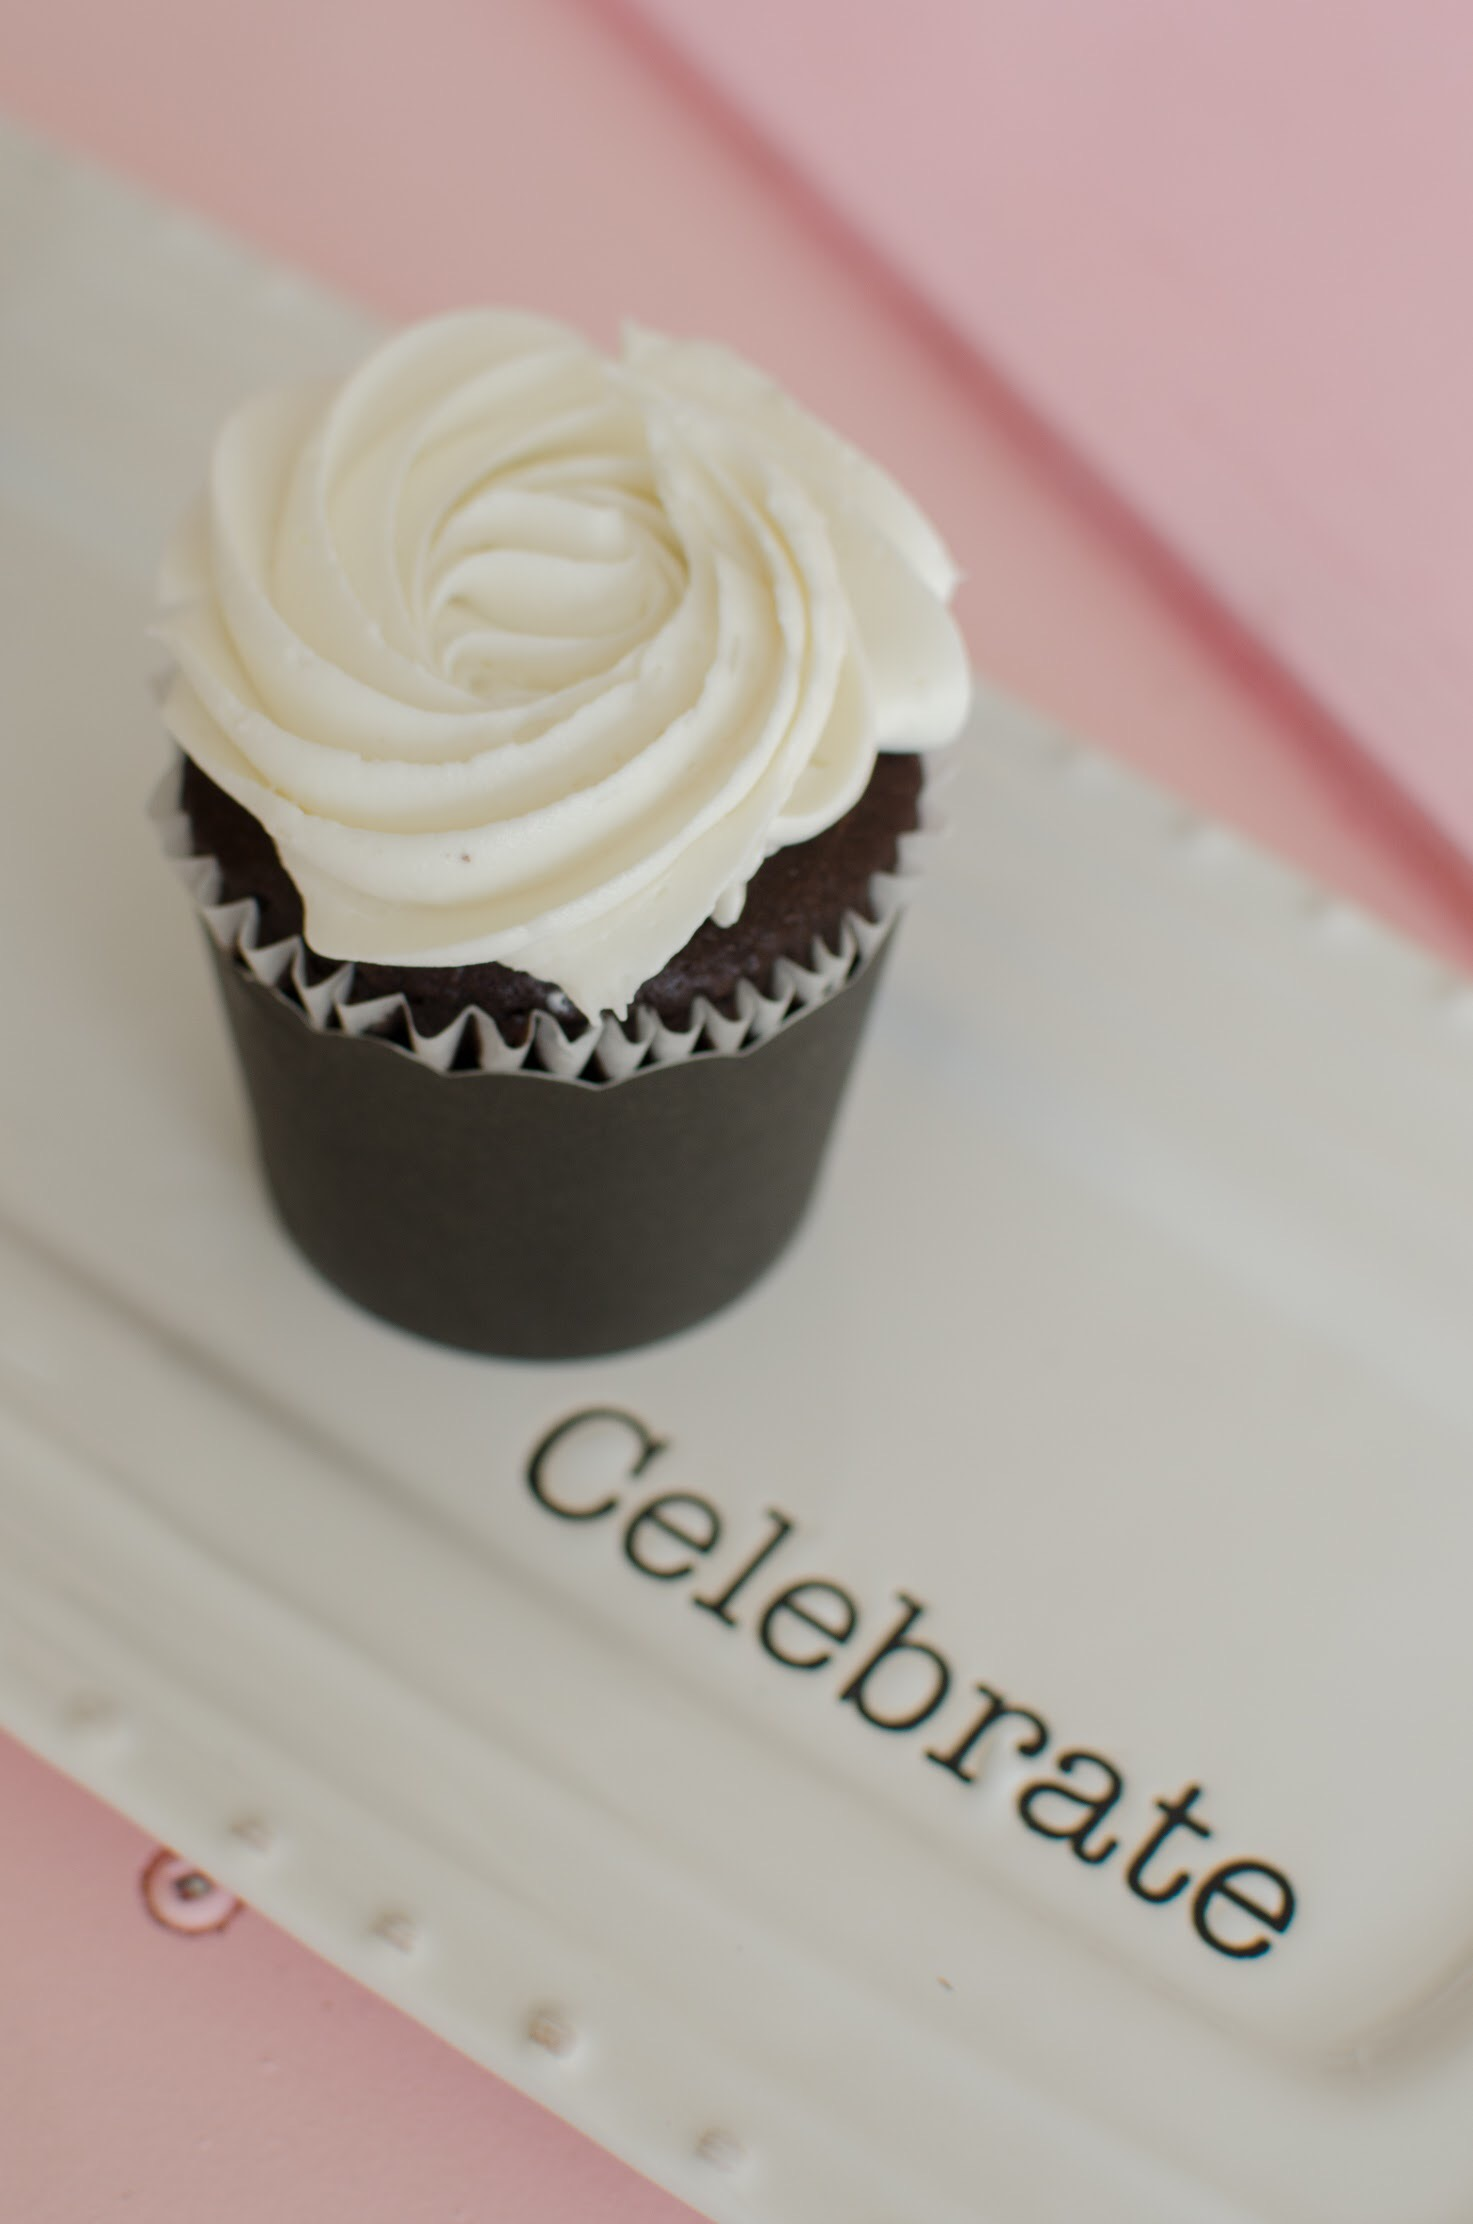 Celebrate Galentine's Day with a coffee and desserts party for your lady friends!